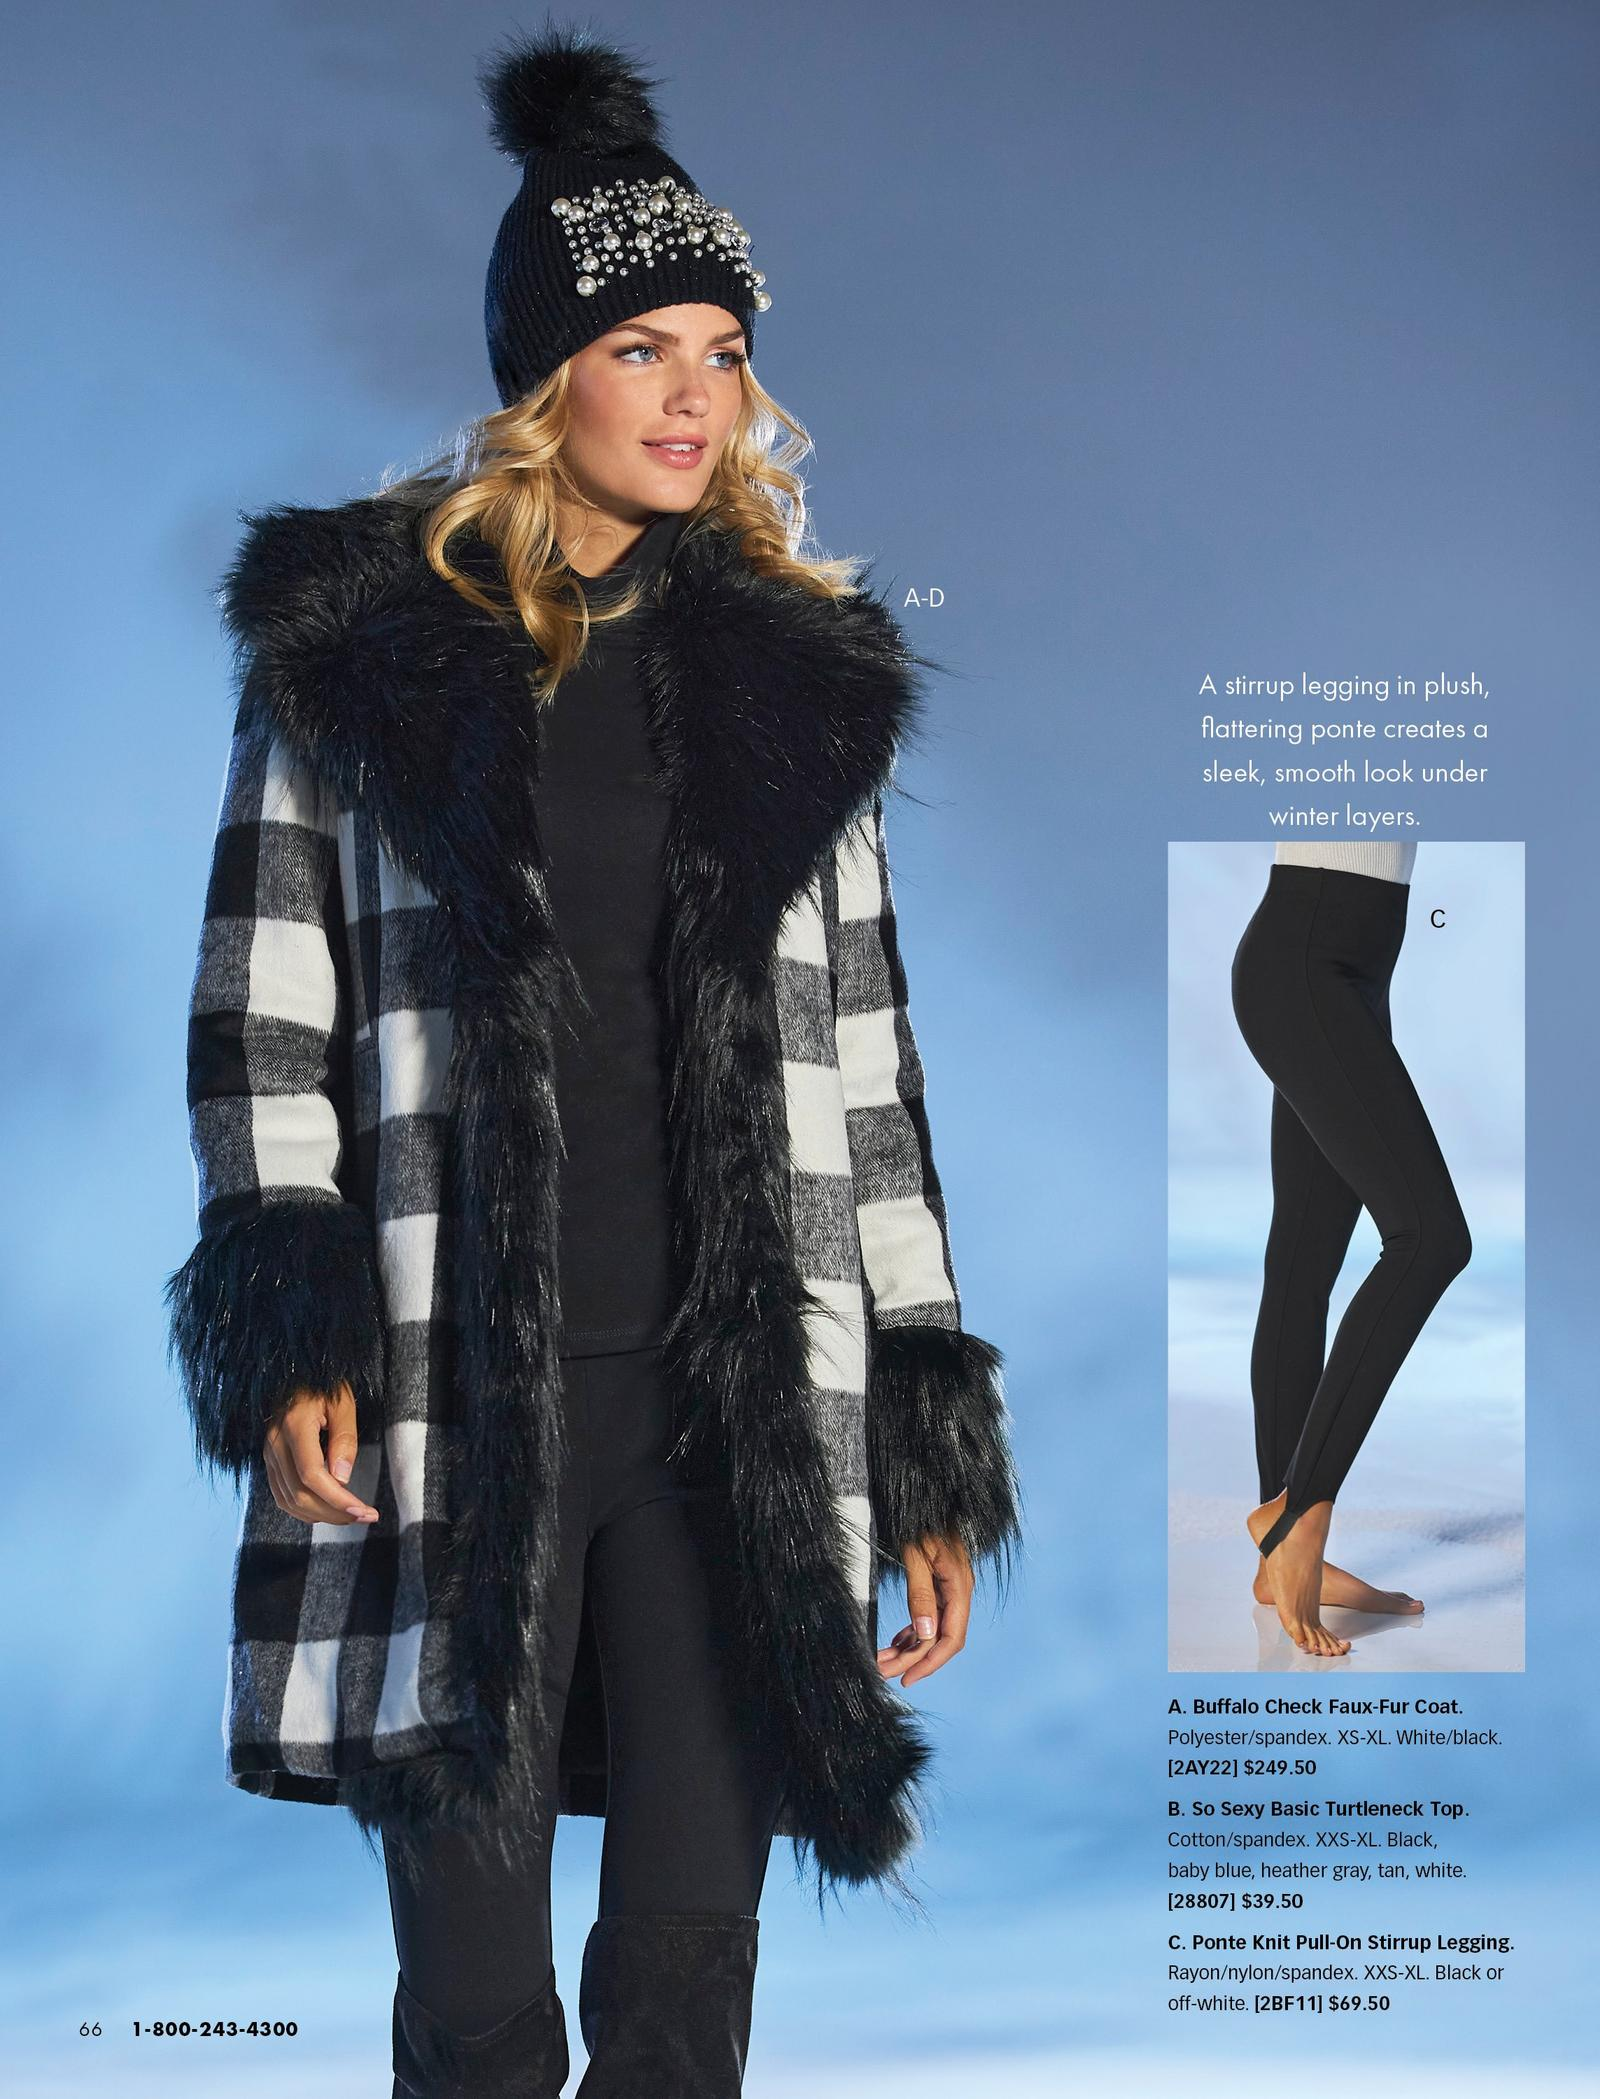 model wearing a black and white buffalo check faux-fur coat, black turtleneck top, black leggings, black pearl embellished beanie, and black over-the-knee suede boots. also shown: the black stirrup leggings.